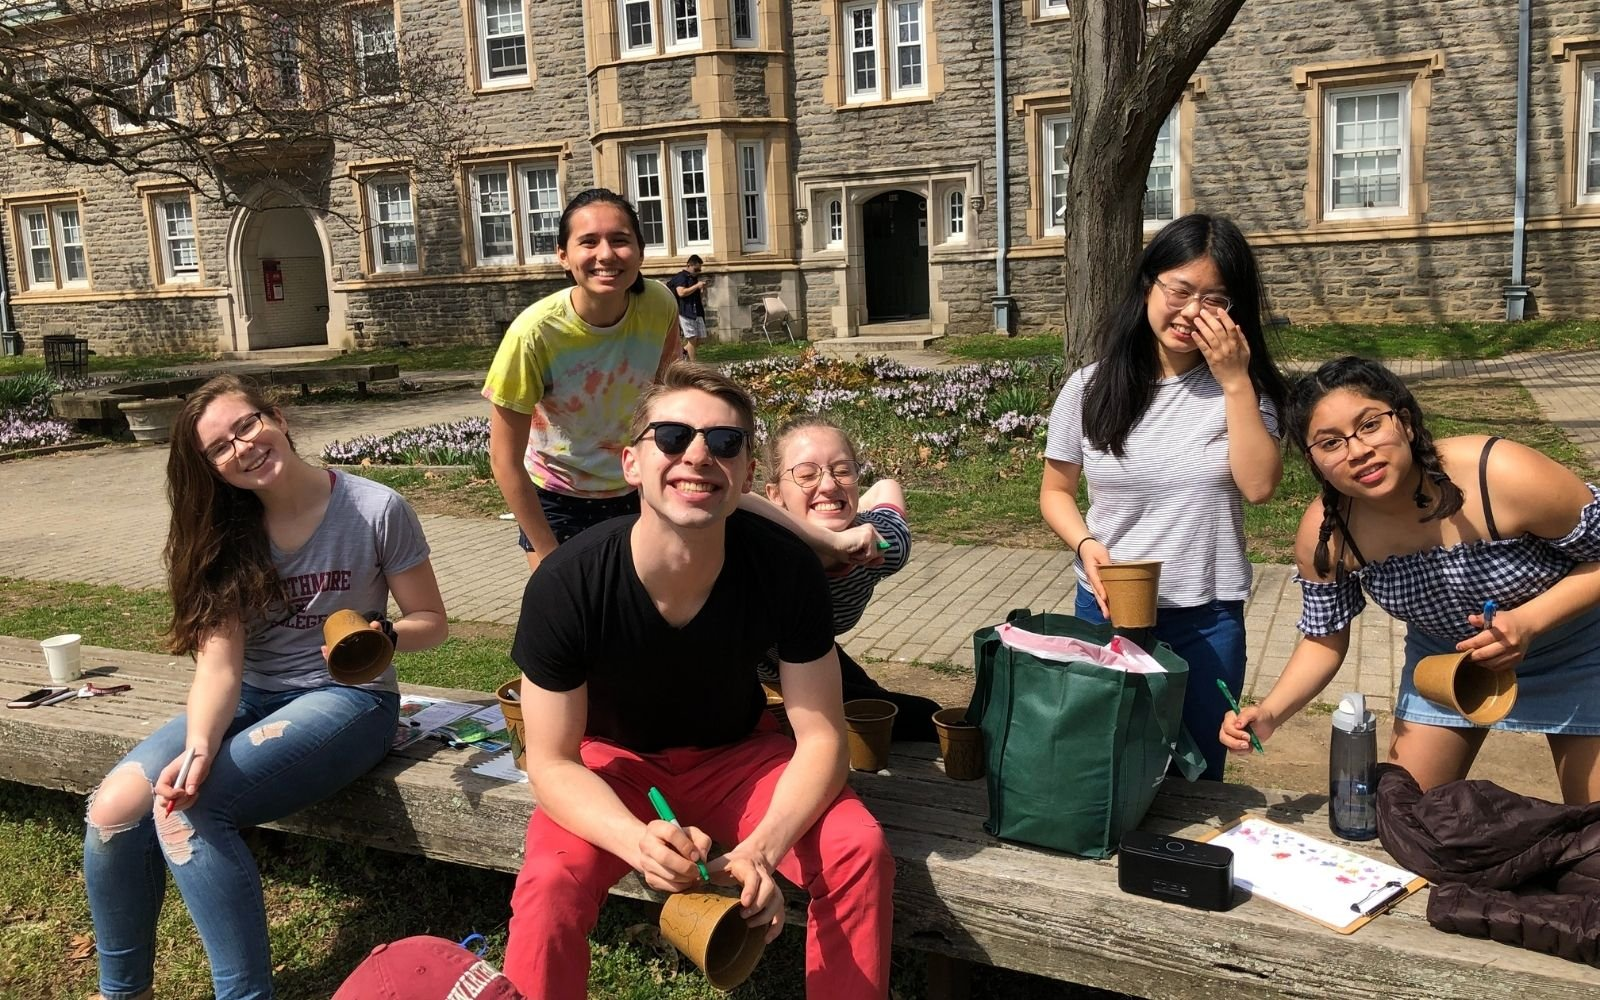 A group of students hanging out in a dorm courtyard on a sunny day make faces at the camera